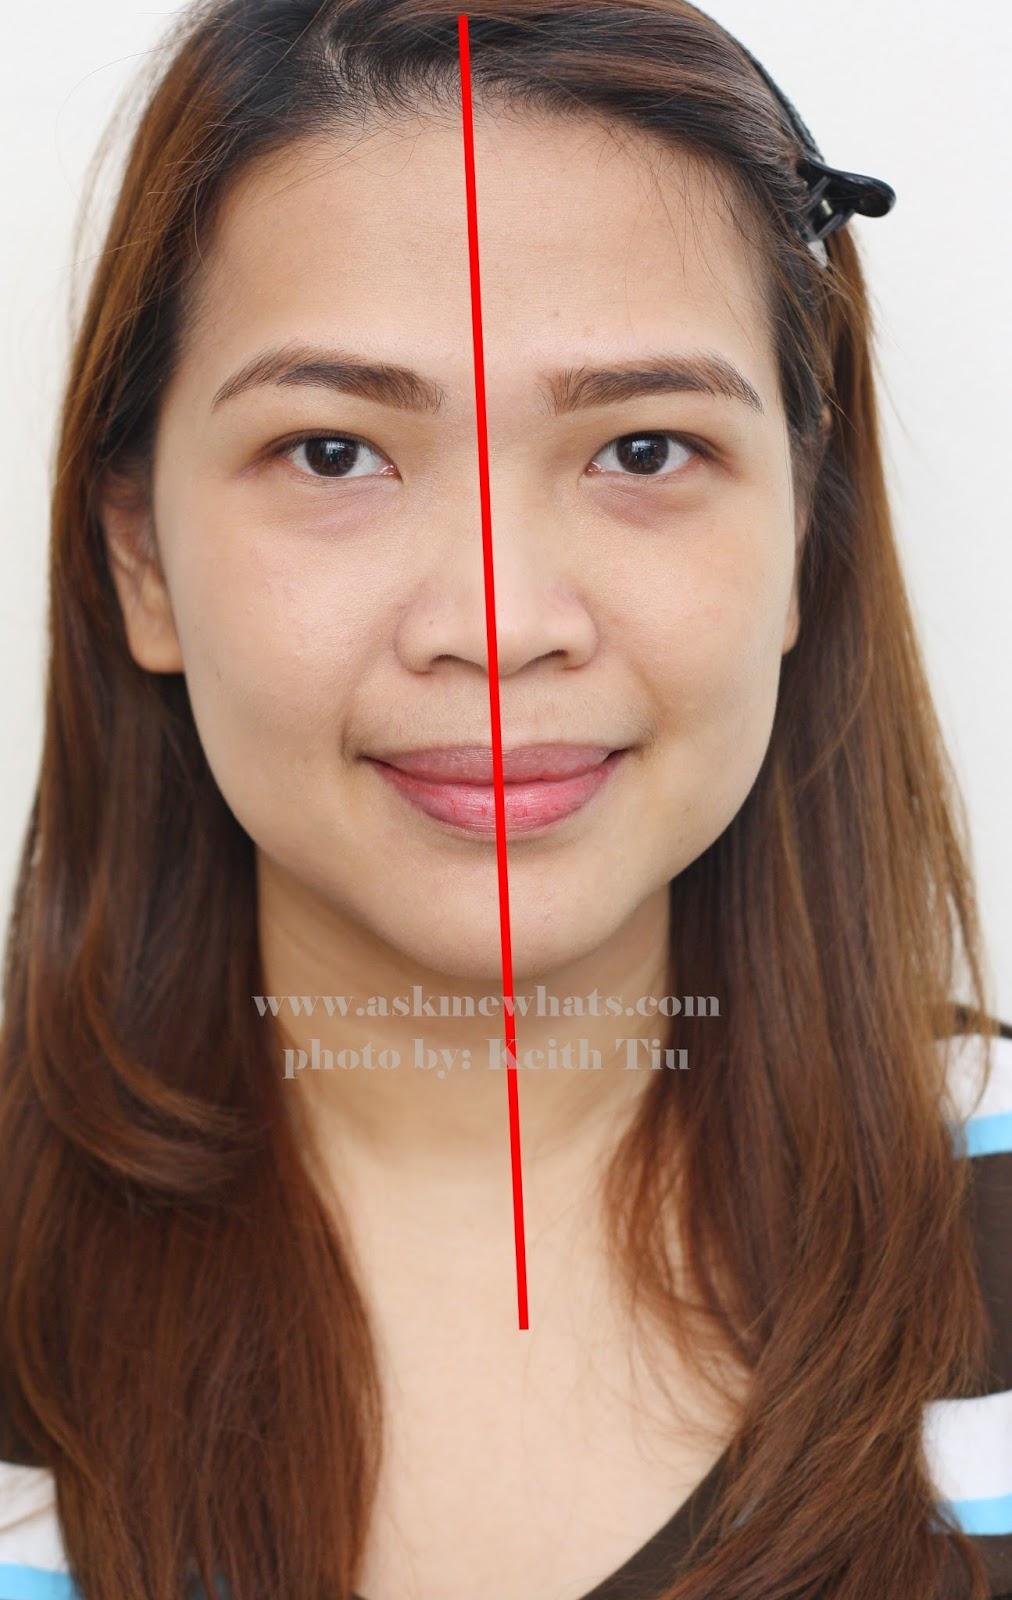 before and after using L'Oreal Paris Lucent Magique BB Skin Luminizing BB Cream SPF19